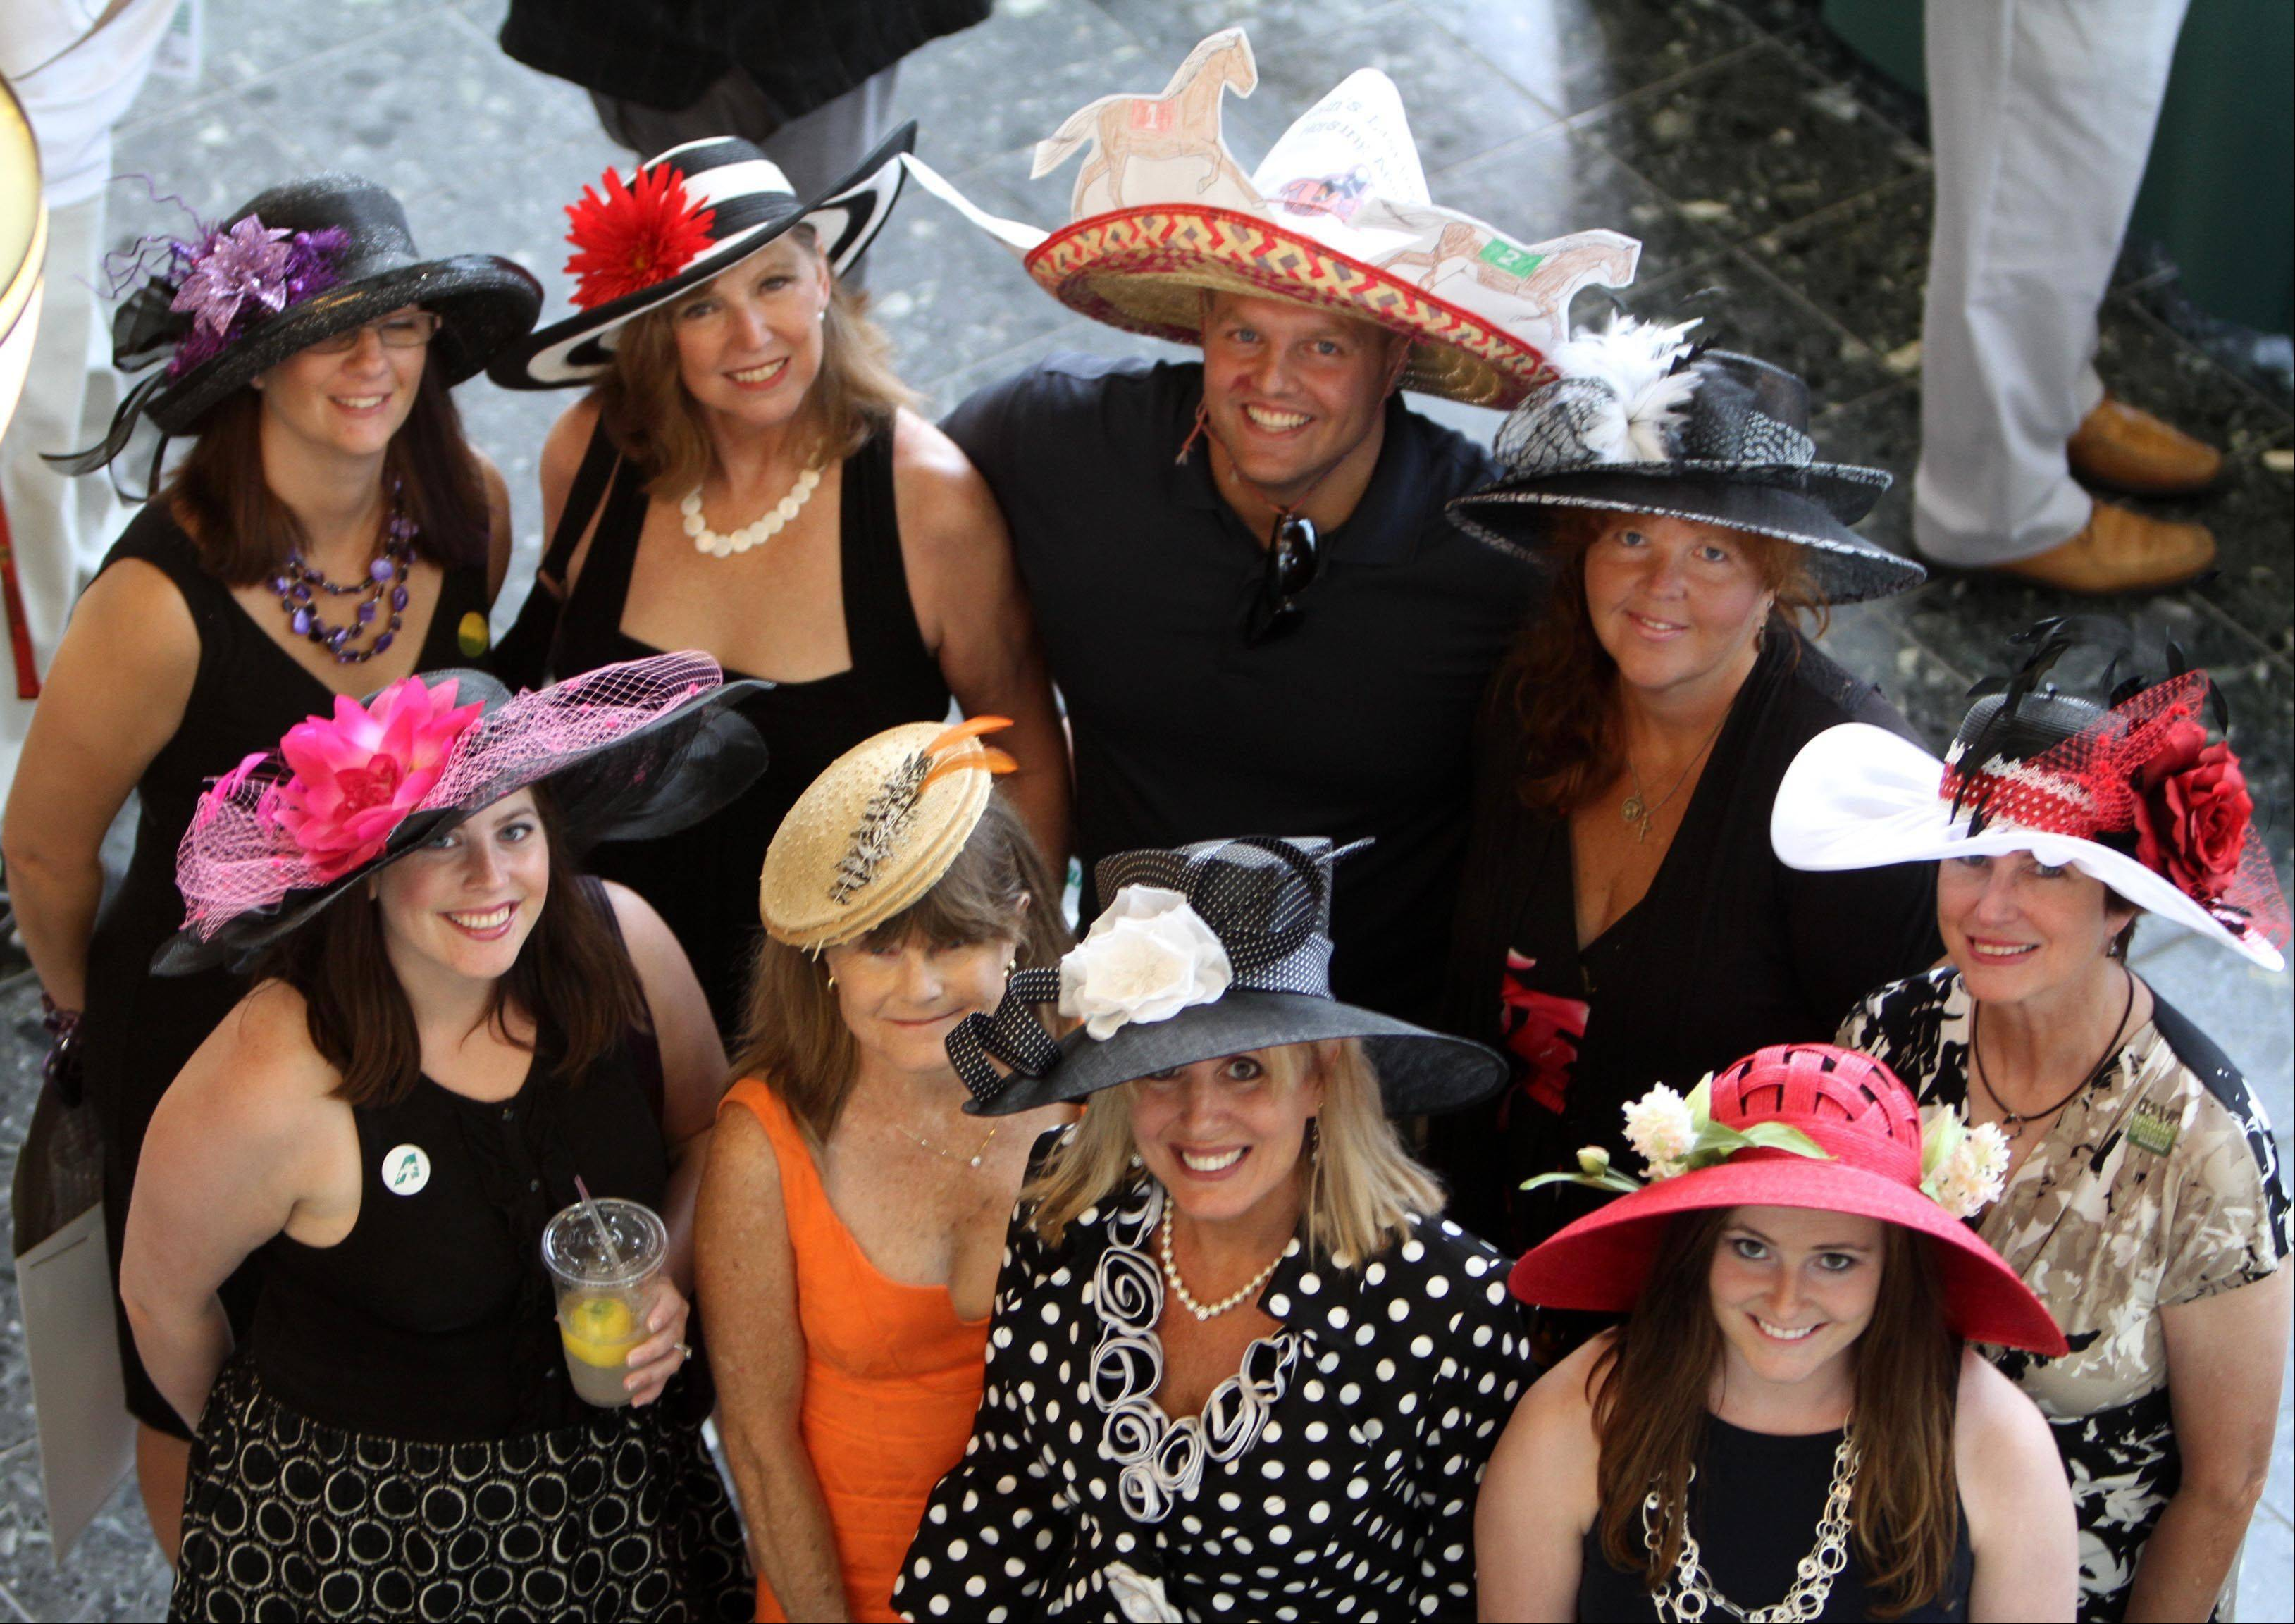 A group entering the hat contest poses before the Arlington Million.